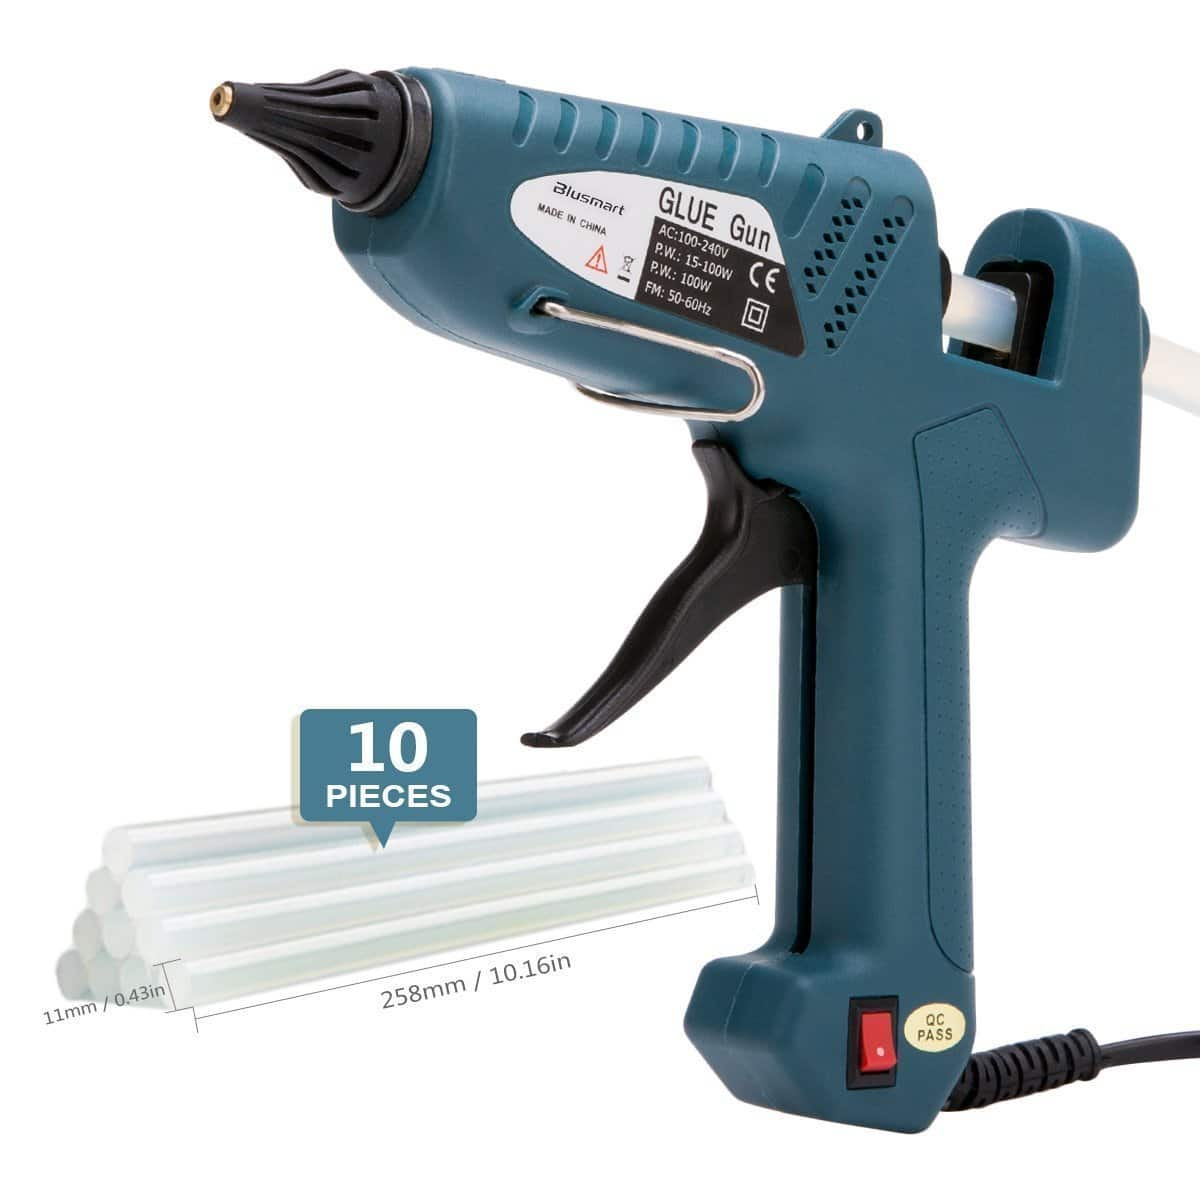 100-Watt Industrial Hot Melt Glue with 10pcs Glue Sticks for $11.69 or less @Amazon + Free Shipping